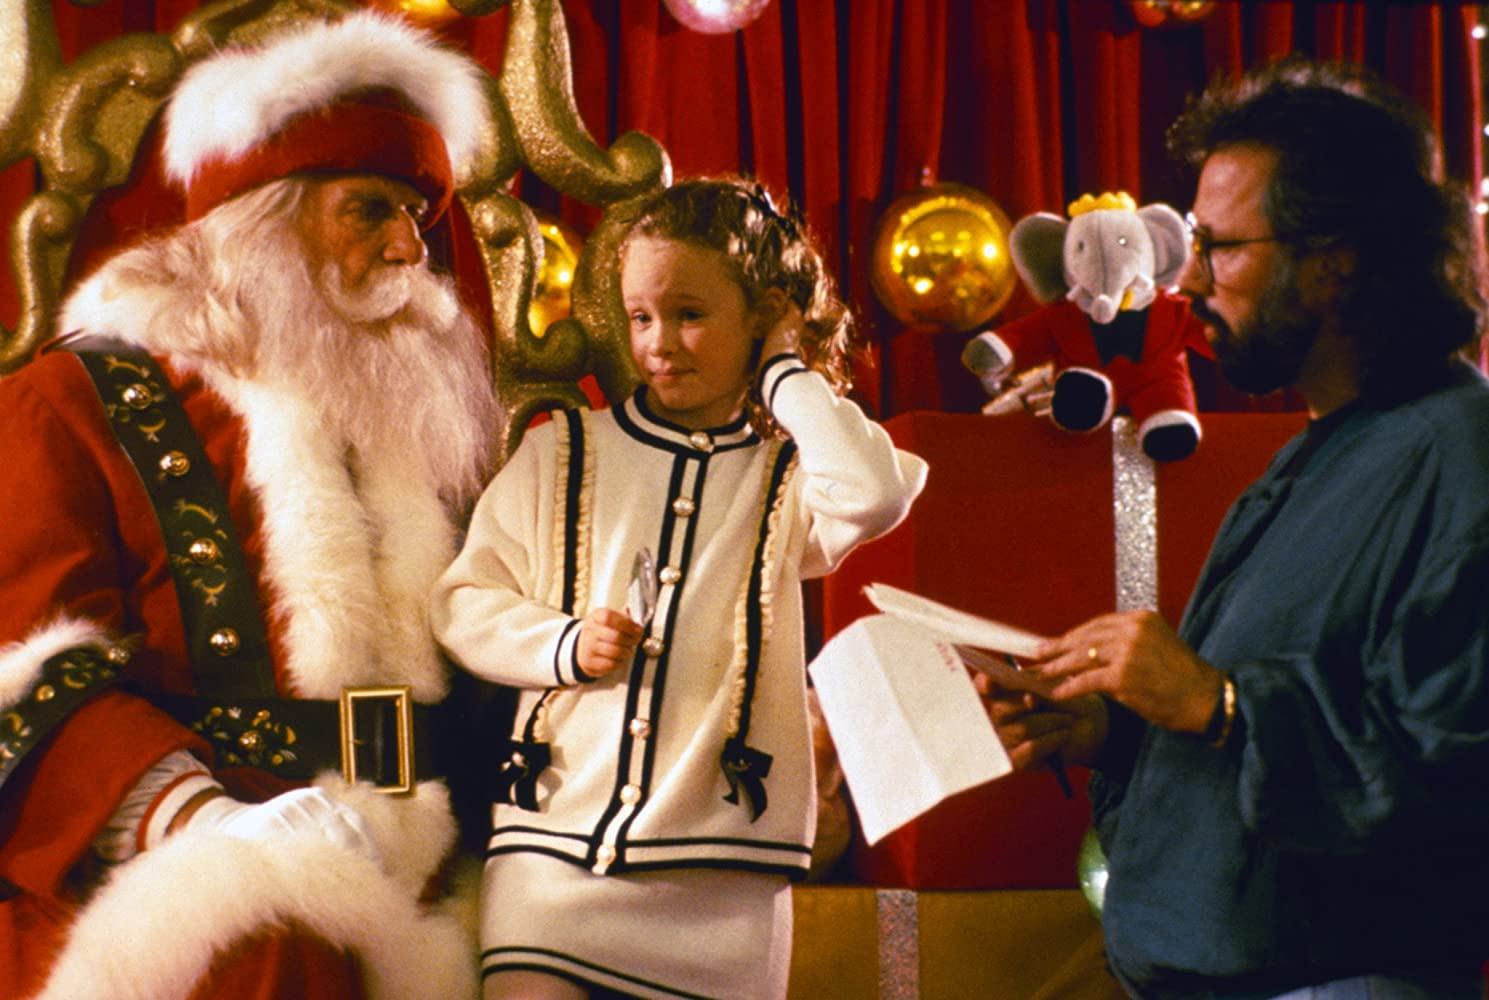 thora birch leslie nielsen and robert lieberman in all i want for christmas - All I Want For Christmas 1991